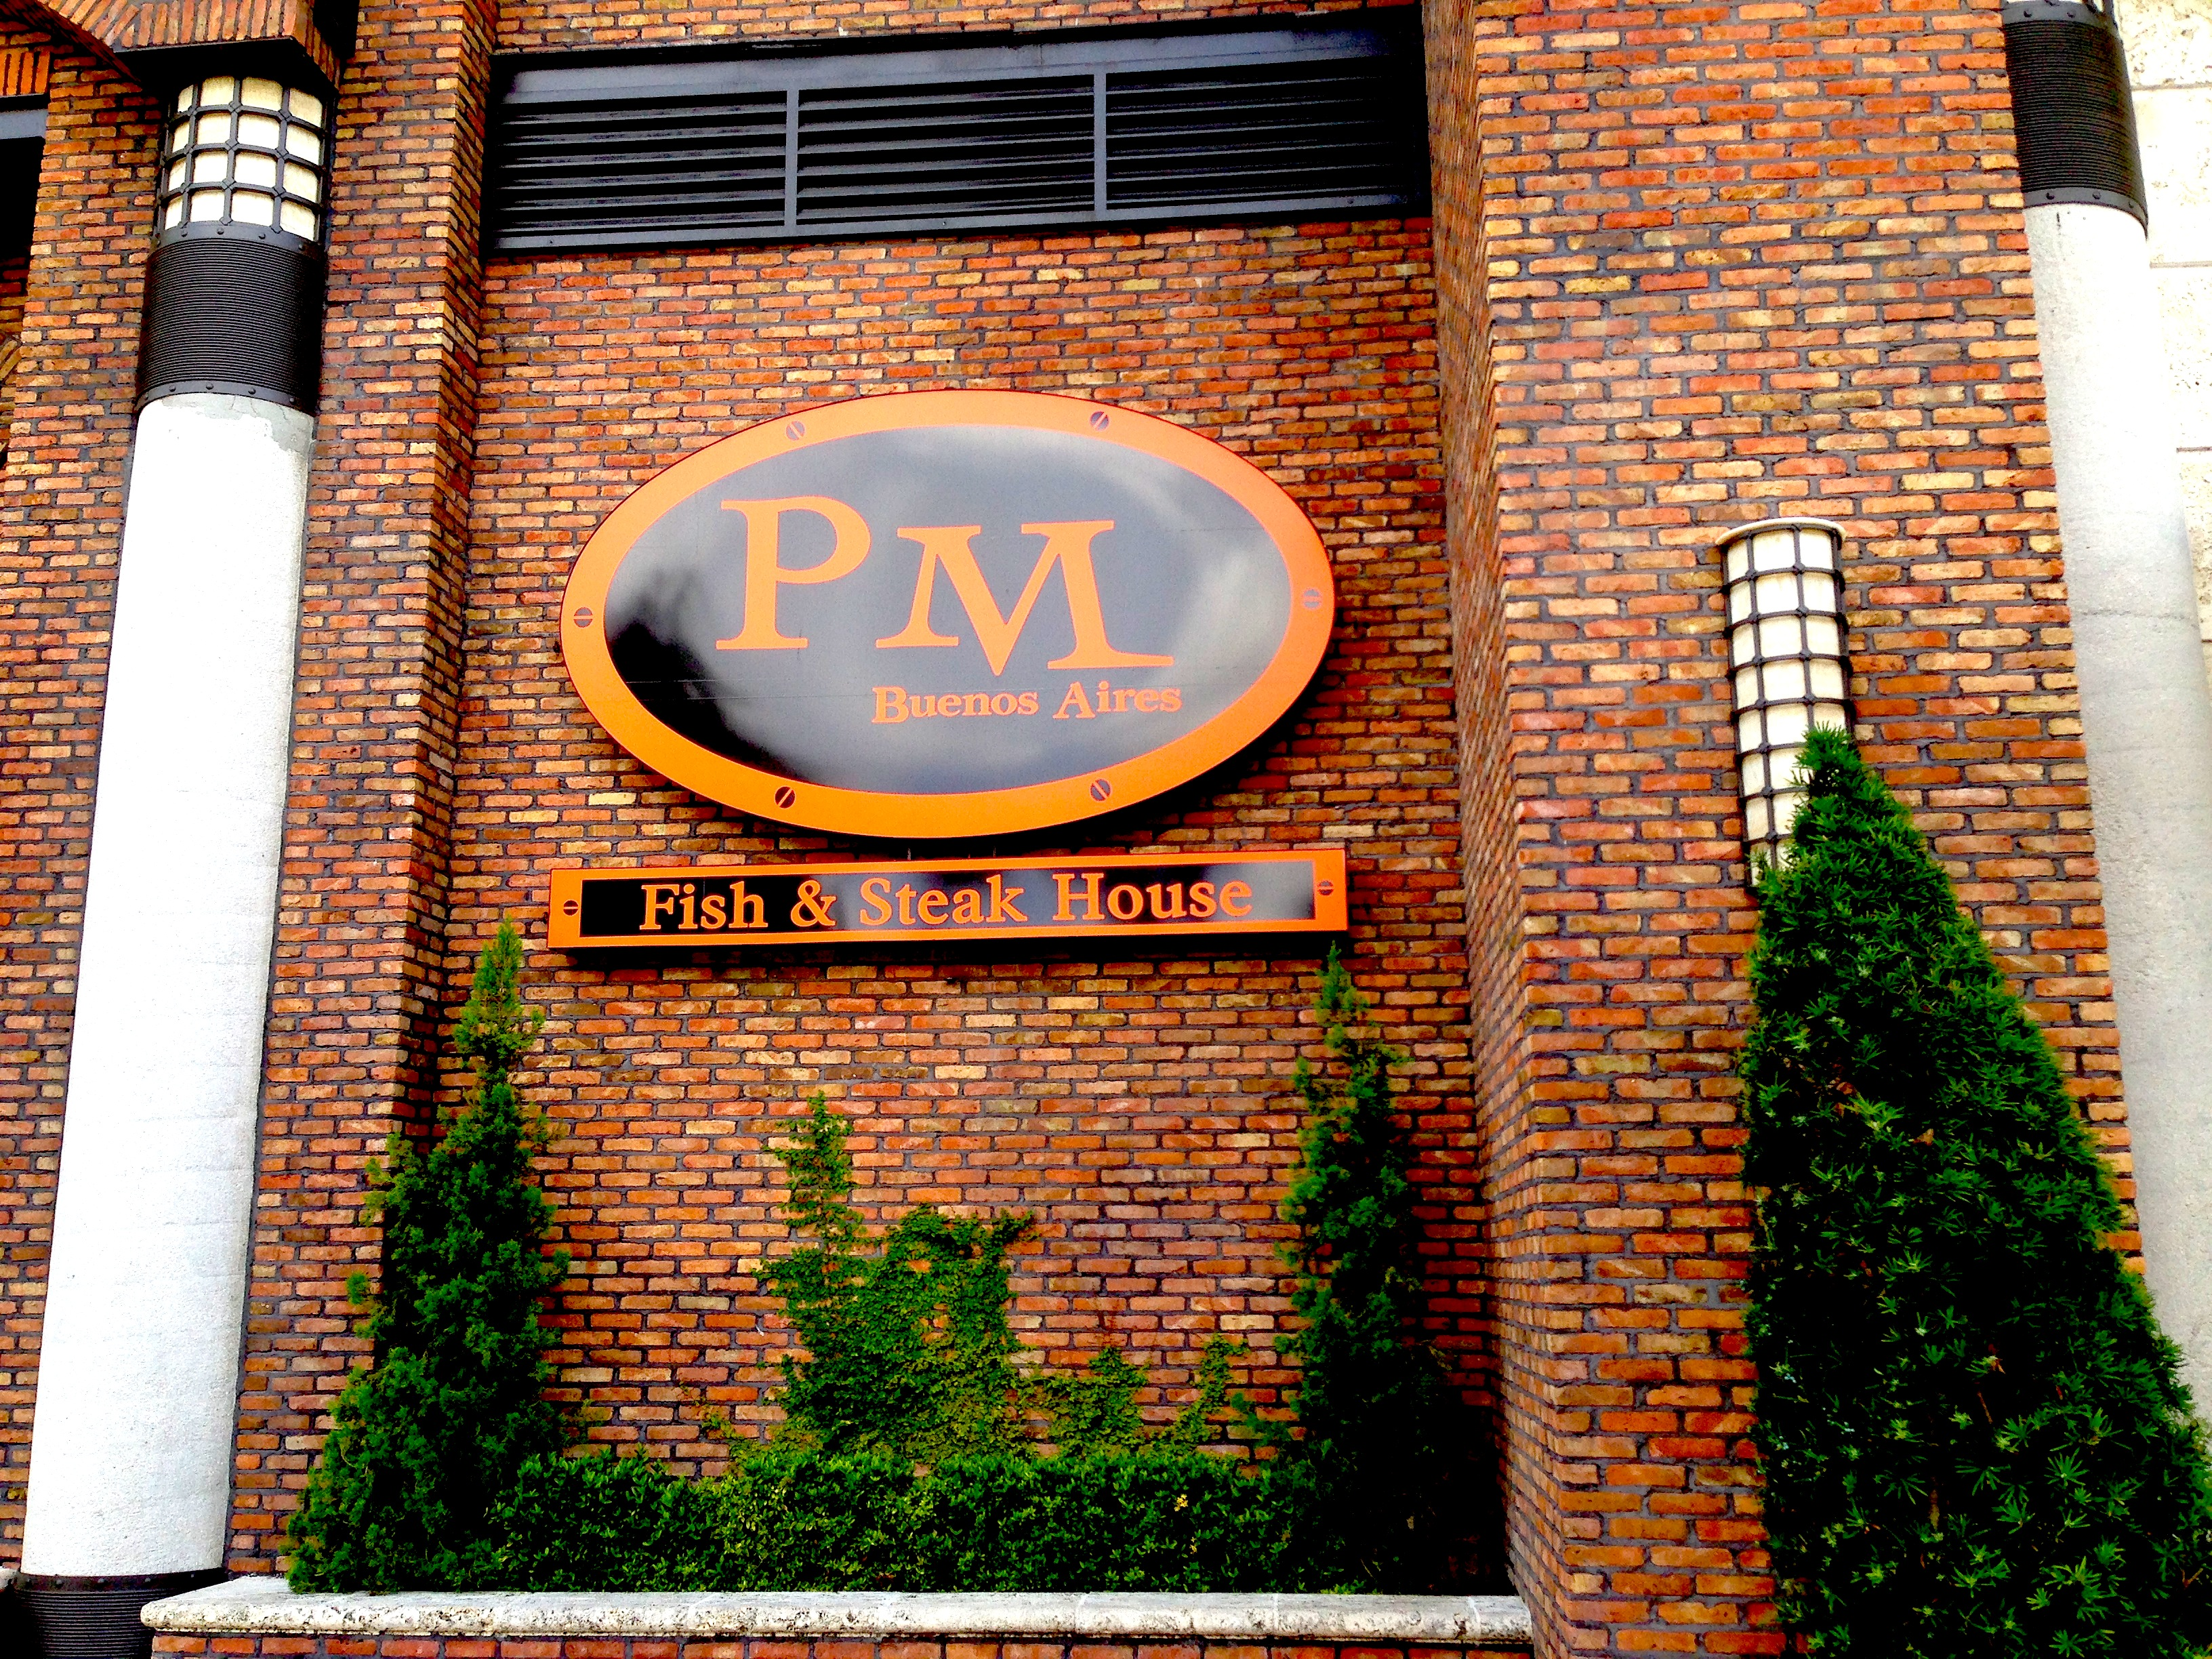 PM Buenos Aires Fish & Steak House